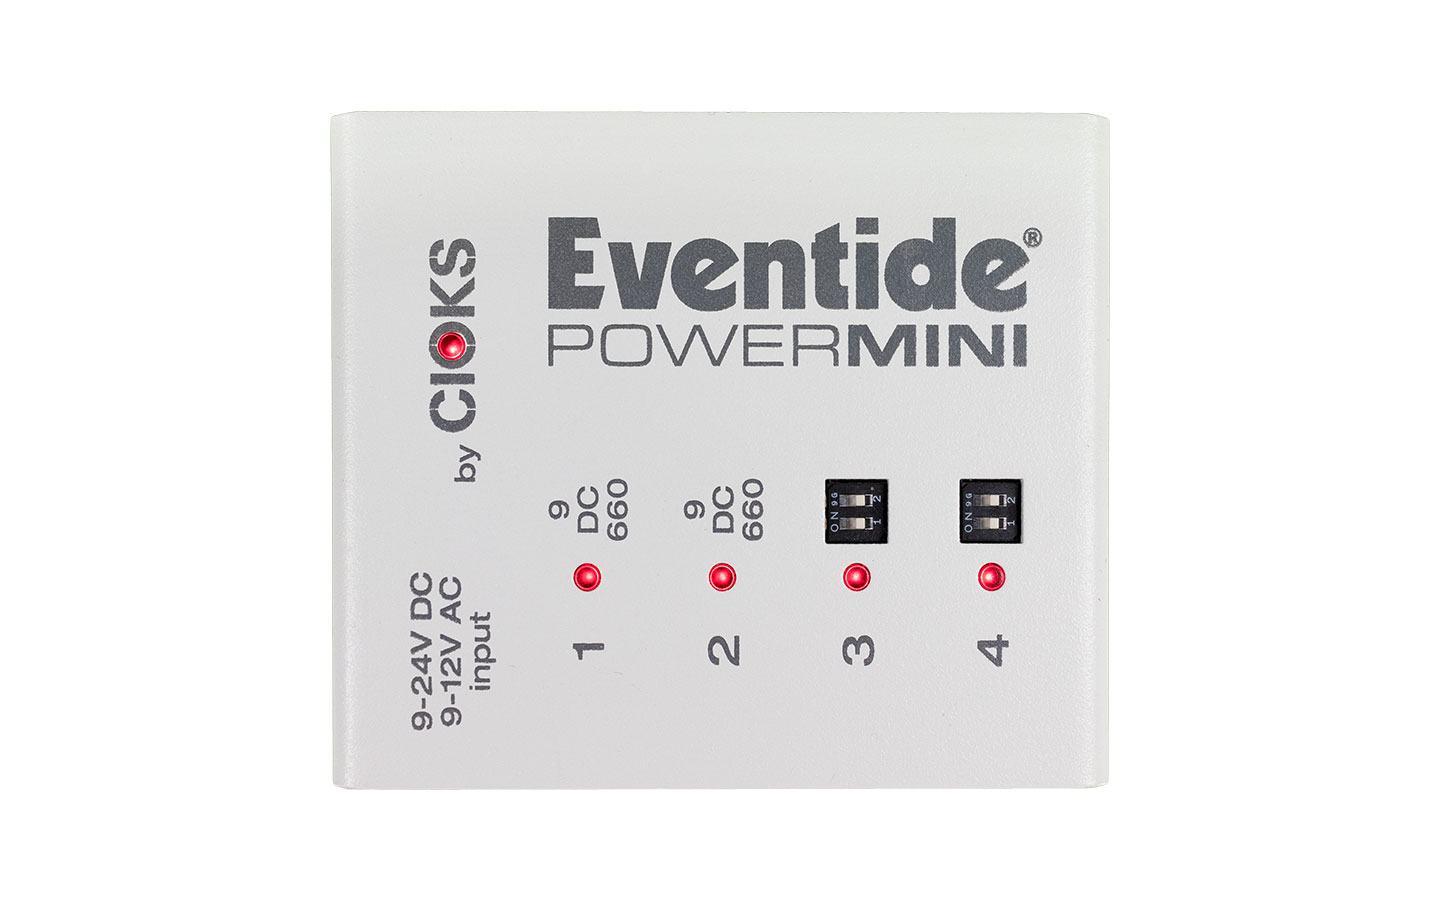 Eventide PowerMini Top Perspective Pedalboard power supply